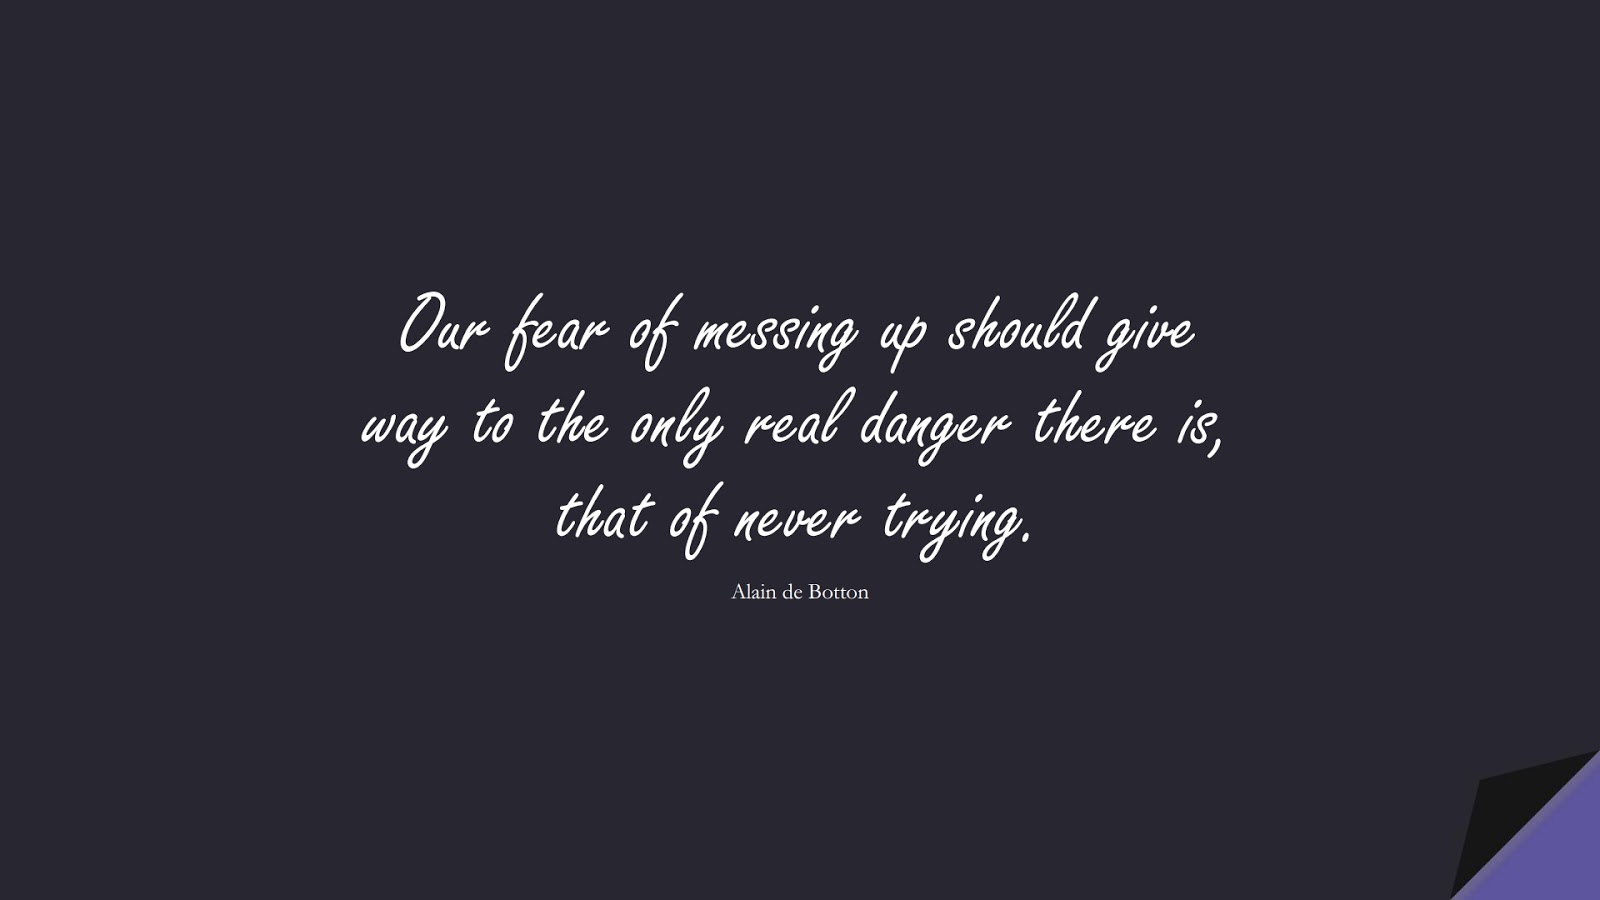 Our fear of messing up should give way to the only real danger there is, that of never trying. (Alain de Botton);  #CourageQuotes